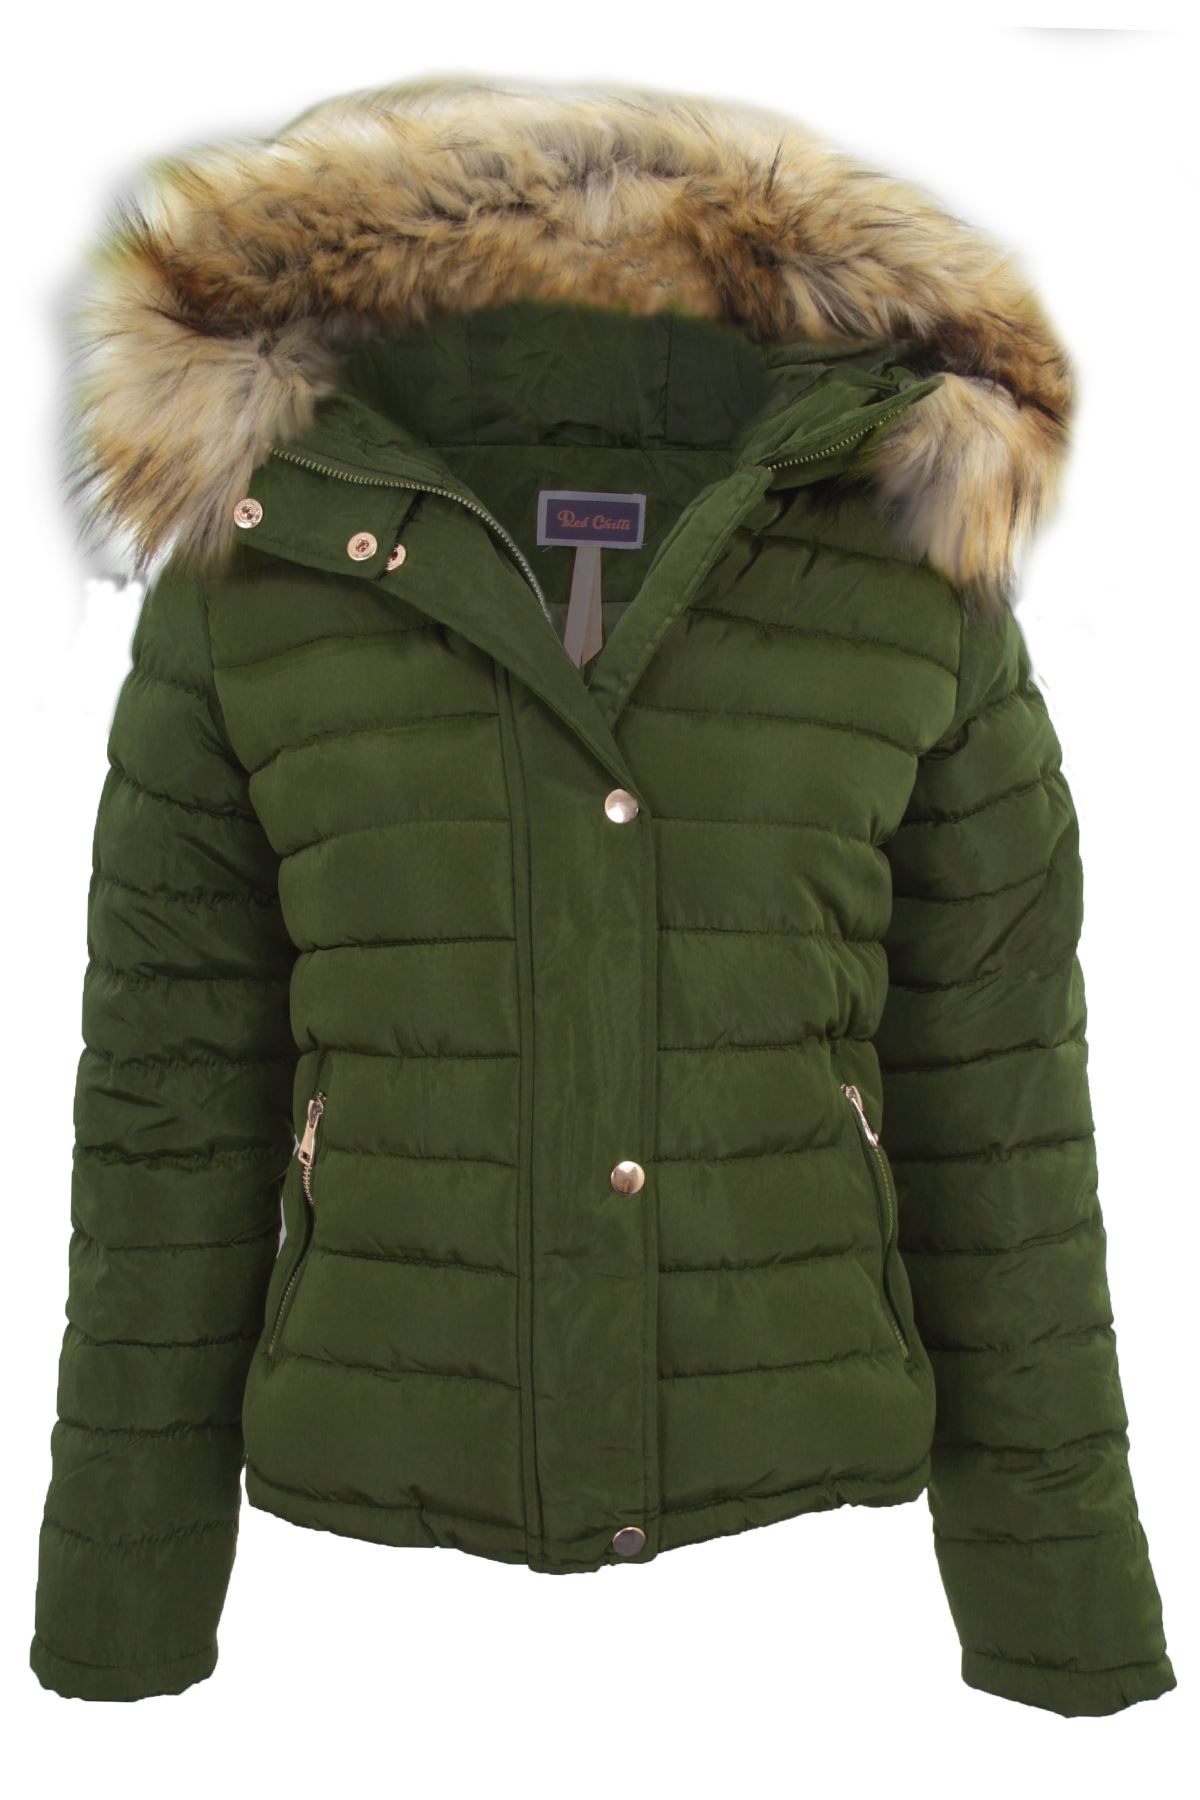 Find a great selection of down & puffer jackets for women at skachat-clas.cf Shop from top brands like Patagonia, The North Face, Canada Goose & more. Free shipping & returns.